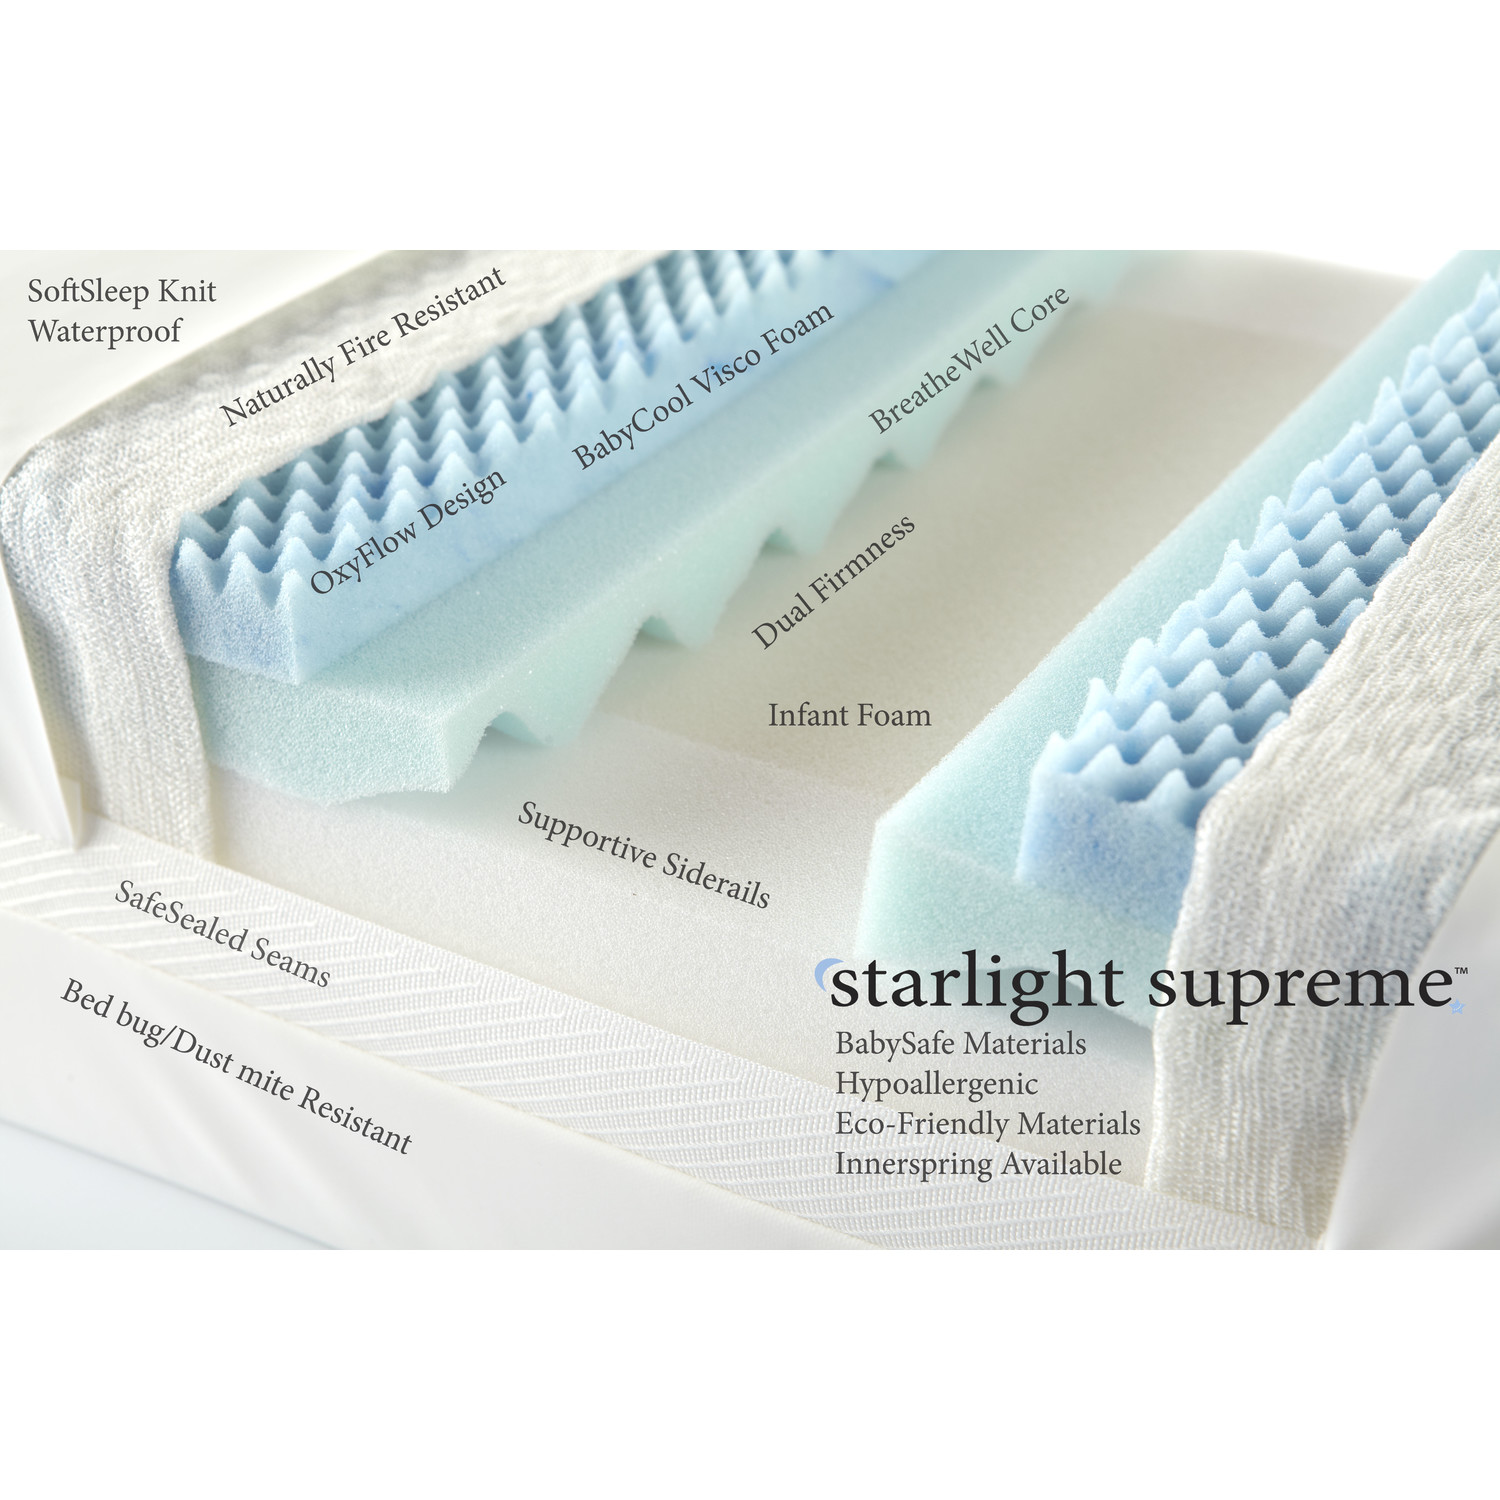 Moonlight-Slumber-Starlight-Support-Supreme-All-Foam-Crib-Mattress-SLSS001